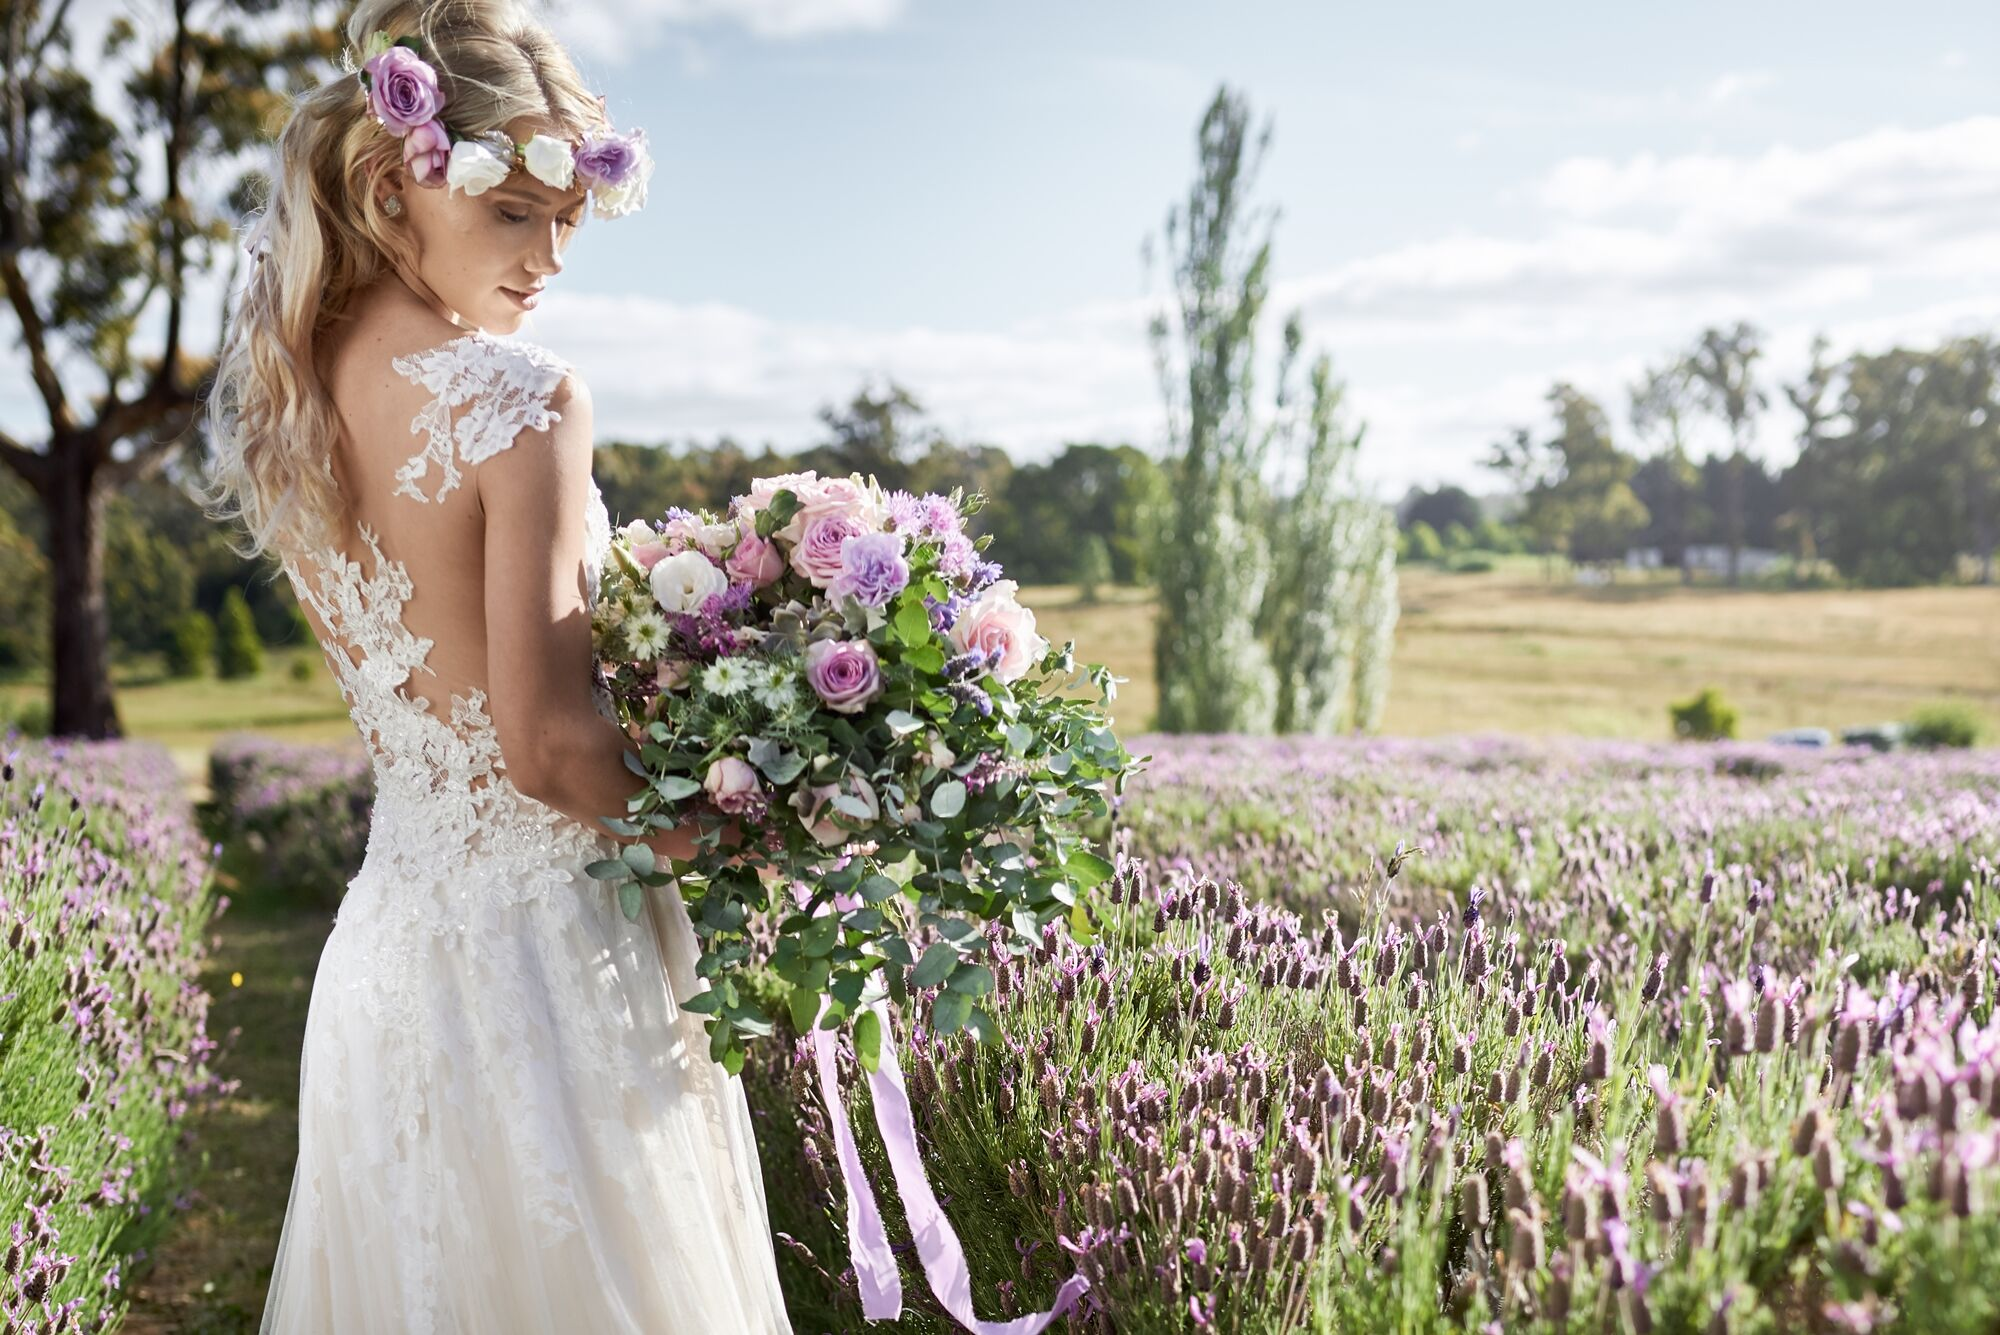 Boho Whimsy: A Lavender Luxe Inspired Photo Shoot